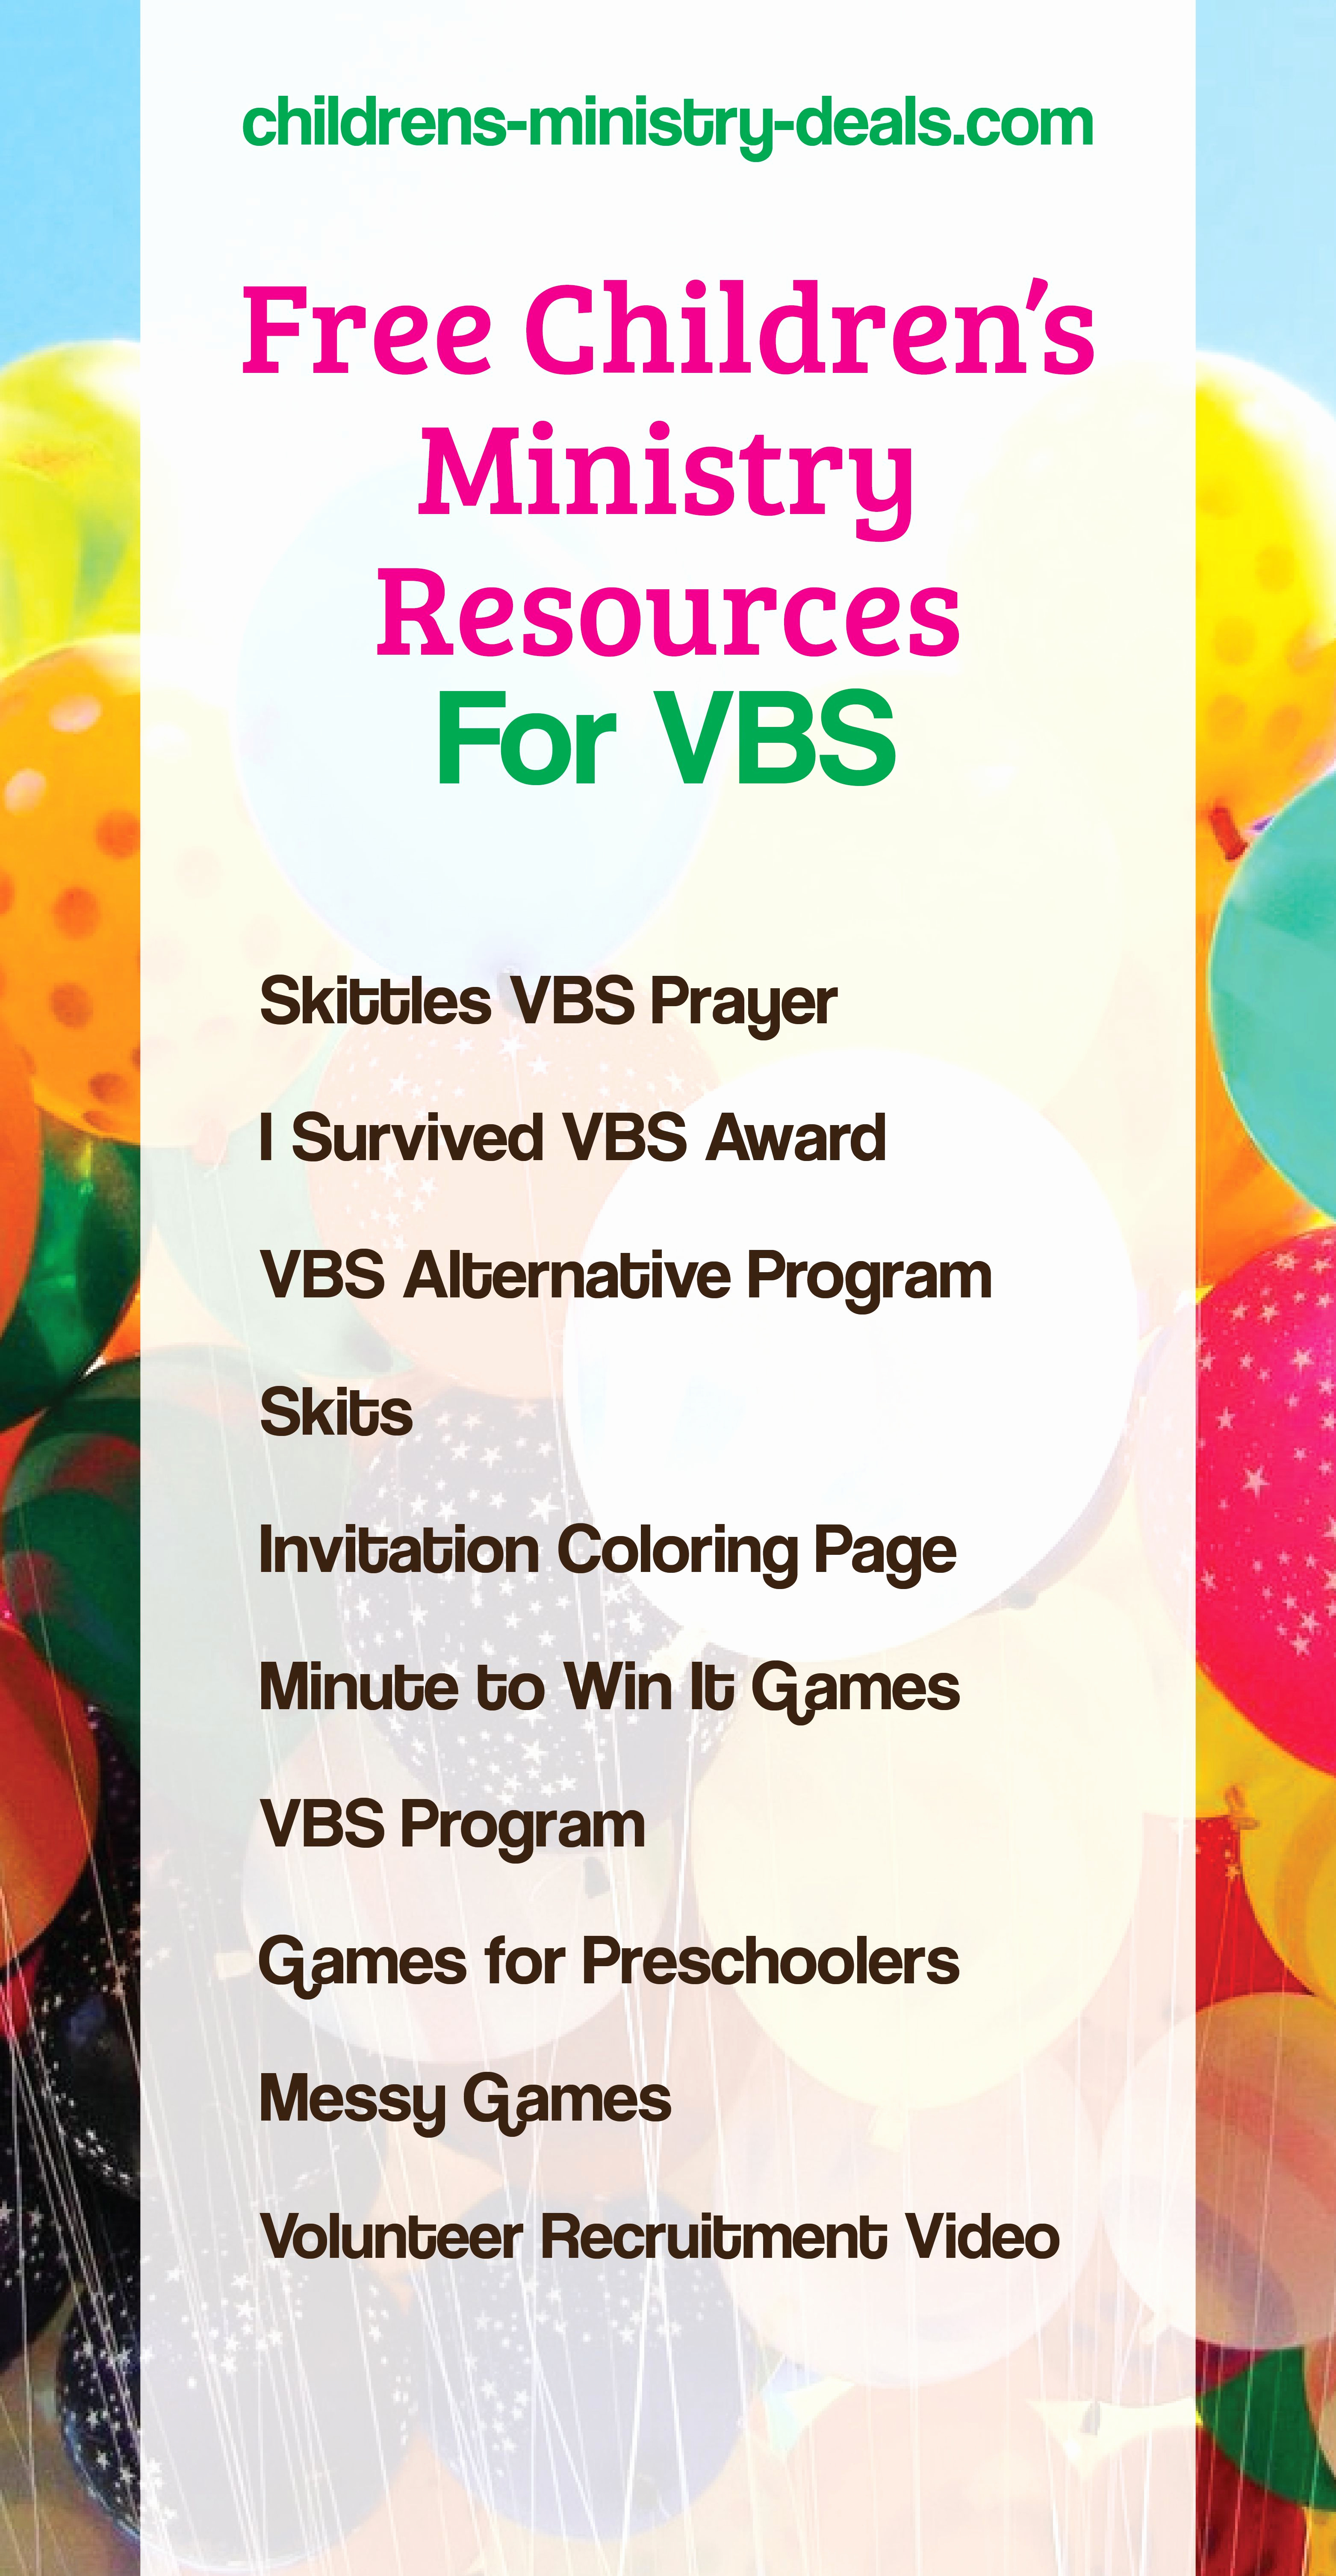 Sunday School Invitation Letter Lovely 10 Free Vbs Resources for 2017